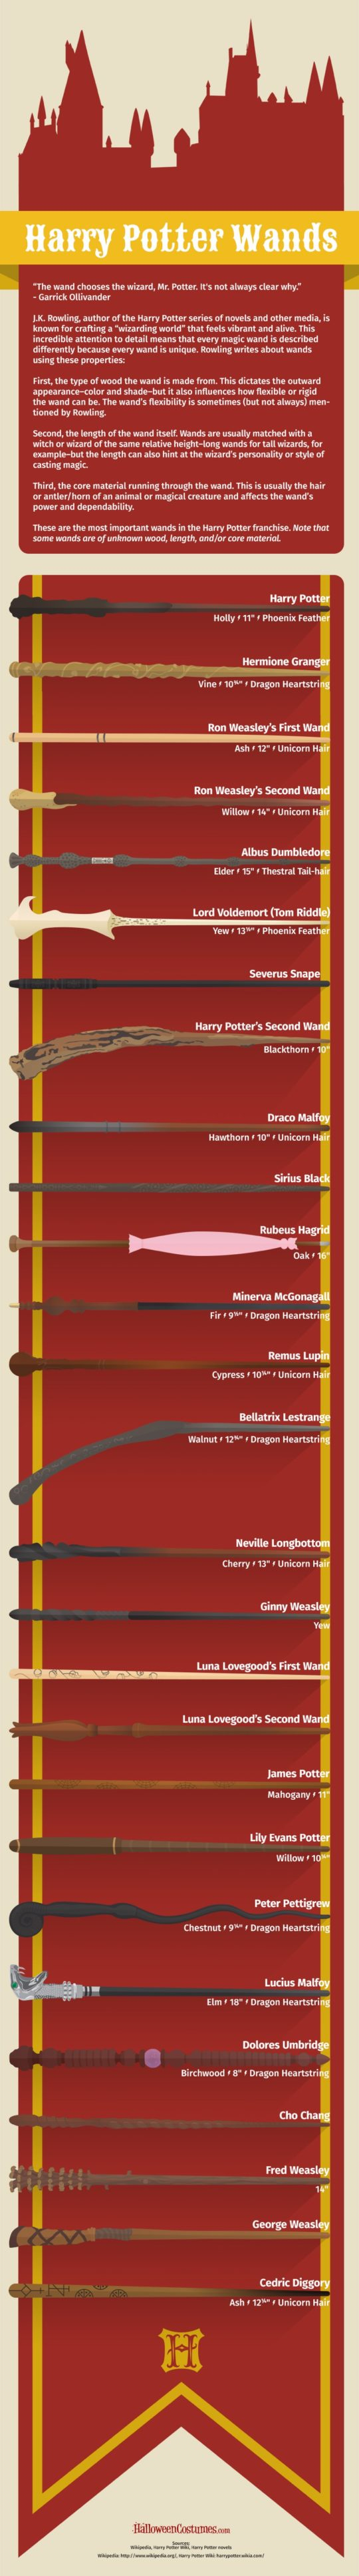 27 Harry Potter wands #infographic